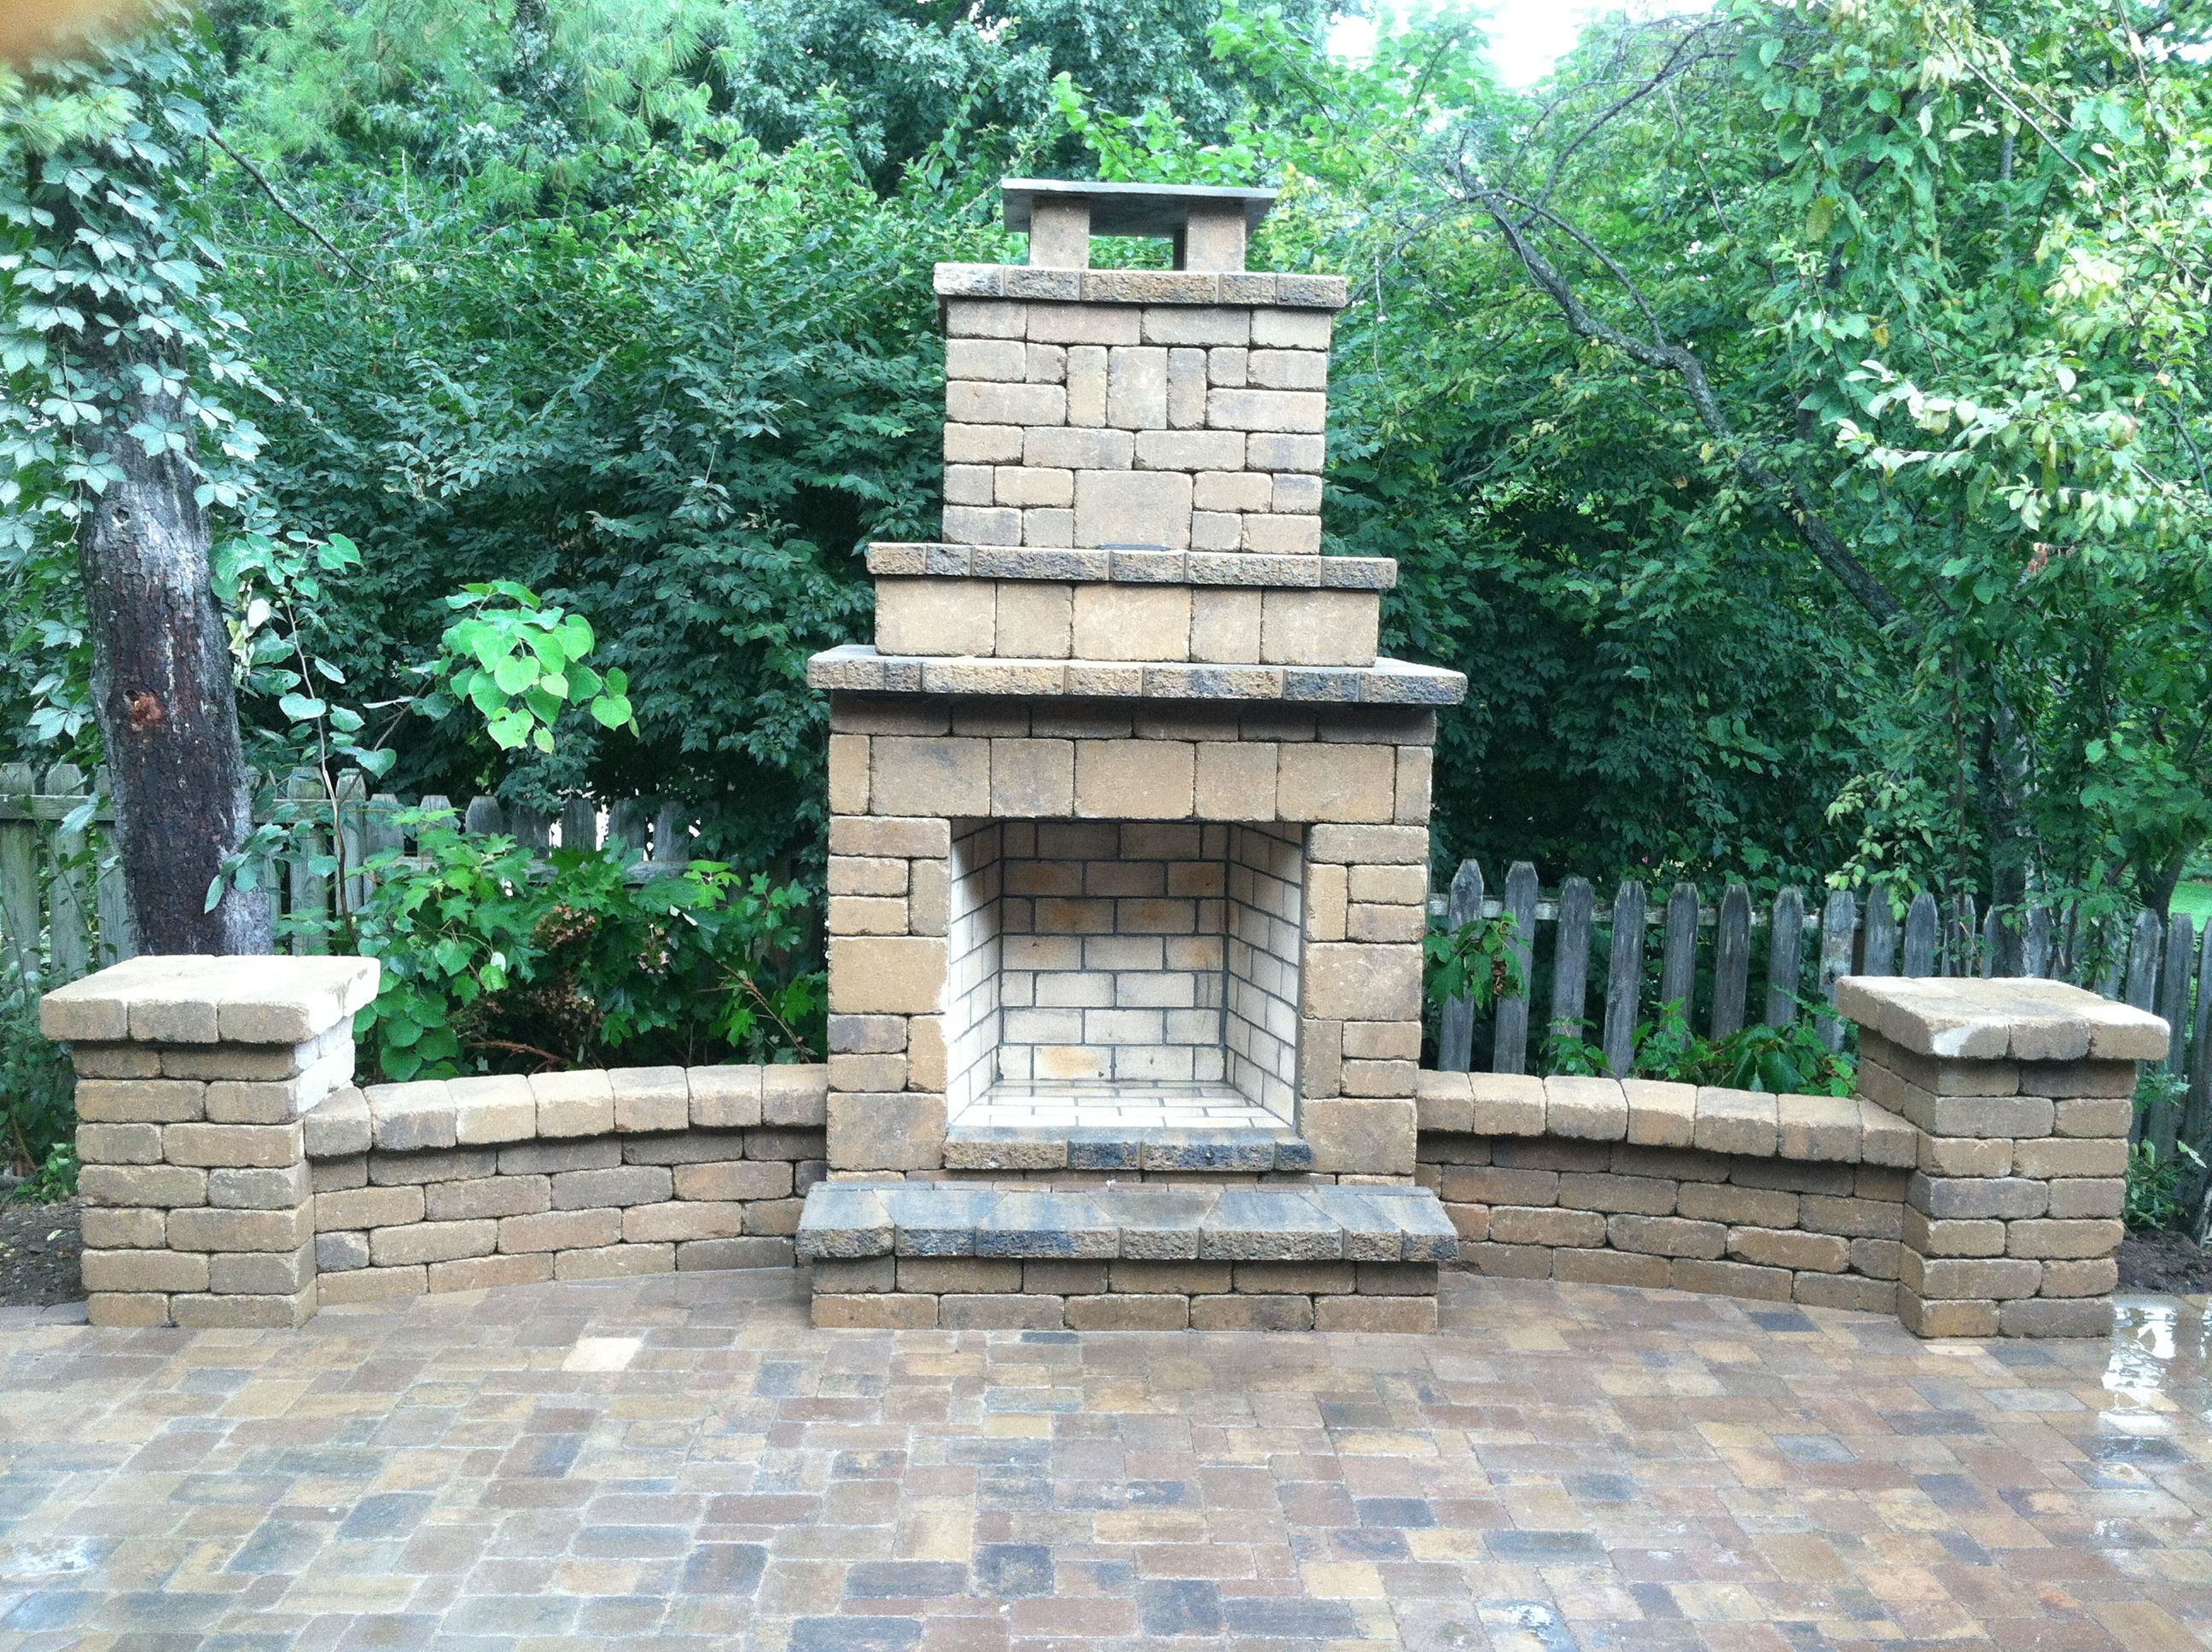 Outdoor Fireplace With Wing Walls Columns And Brick Paver Patio Creative Stone Landscaping Outdoor Fireplace Patio Outdoor Fireplace Designs Patio Fireplace